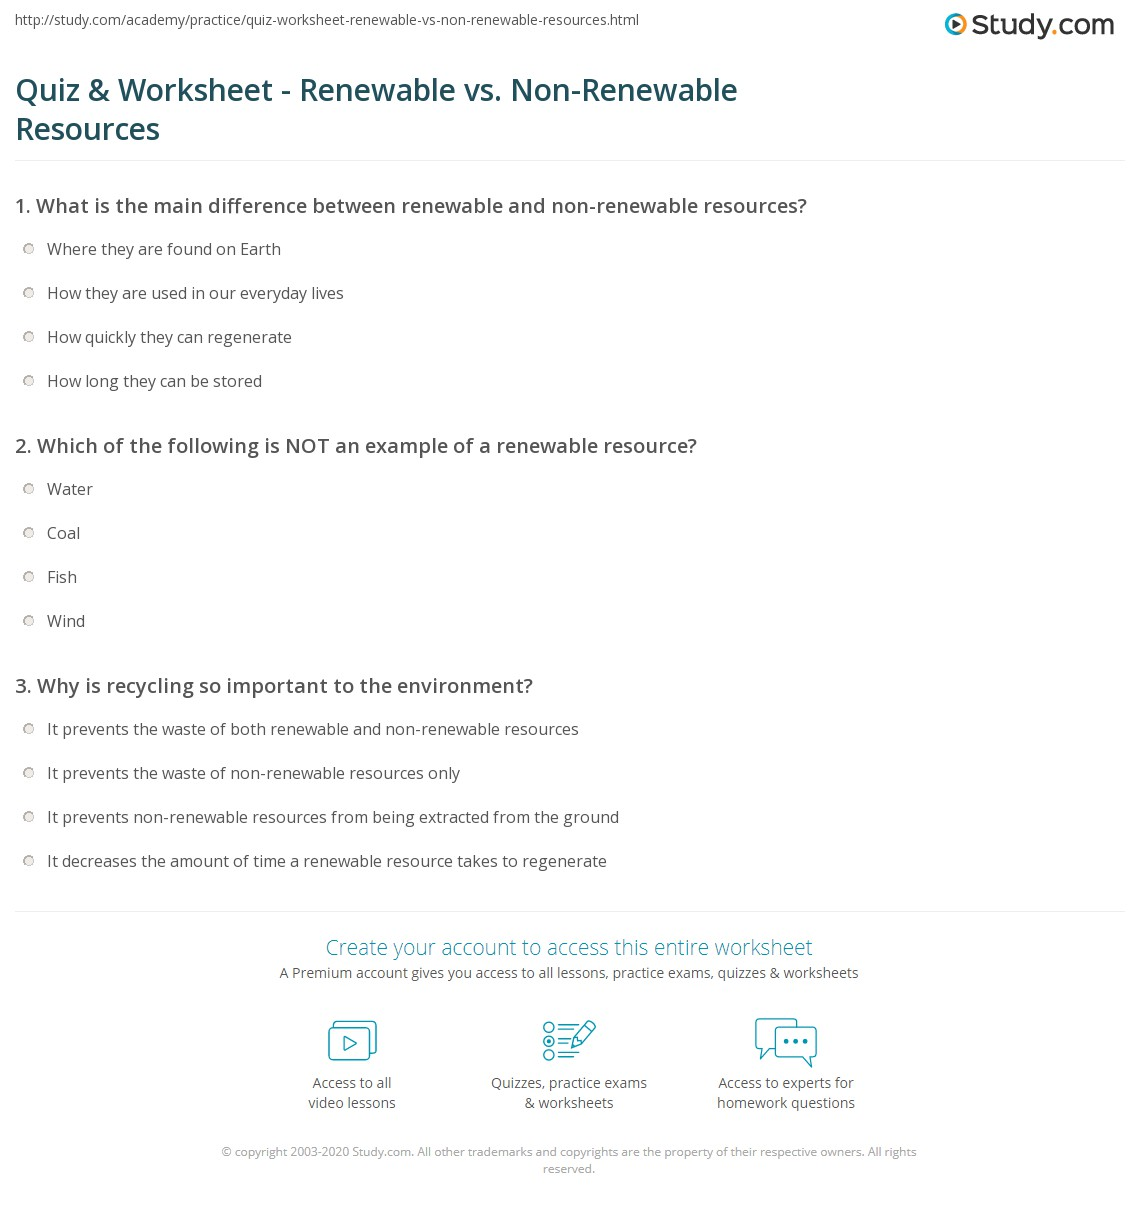 Quiz & Worksheet - Renewable vs. Non-Renewable Resources | Study.com